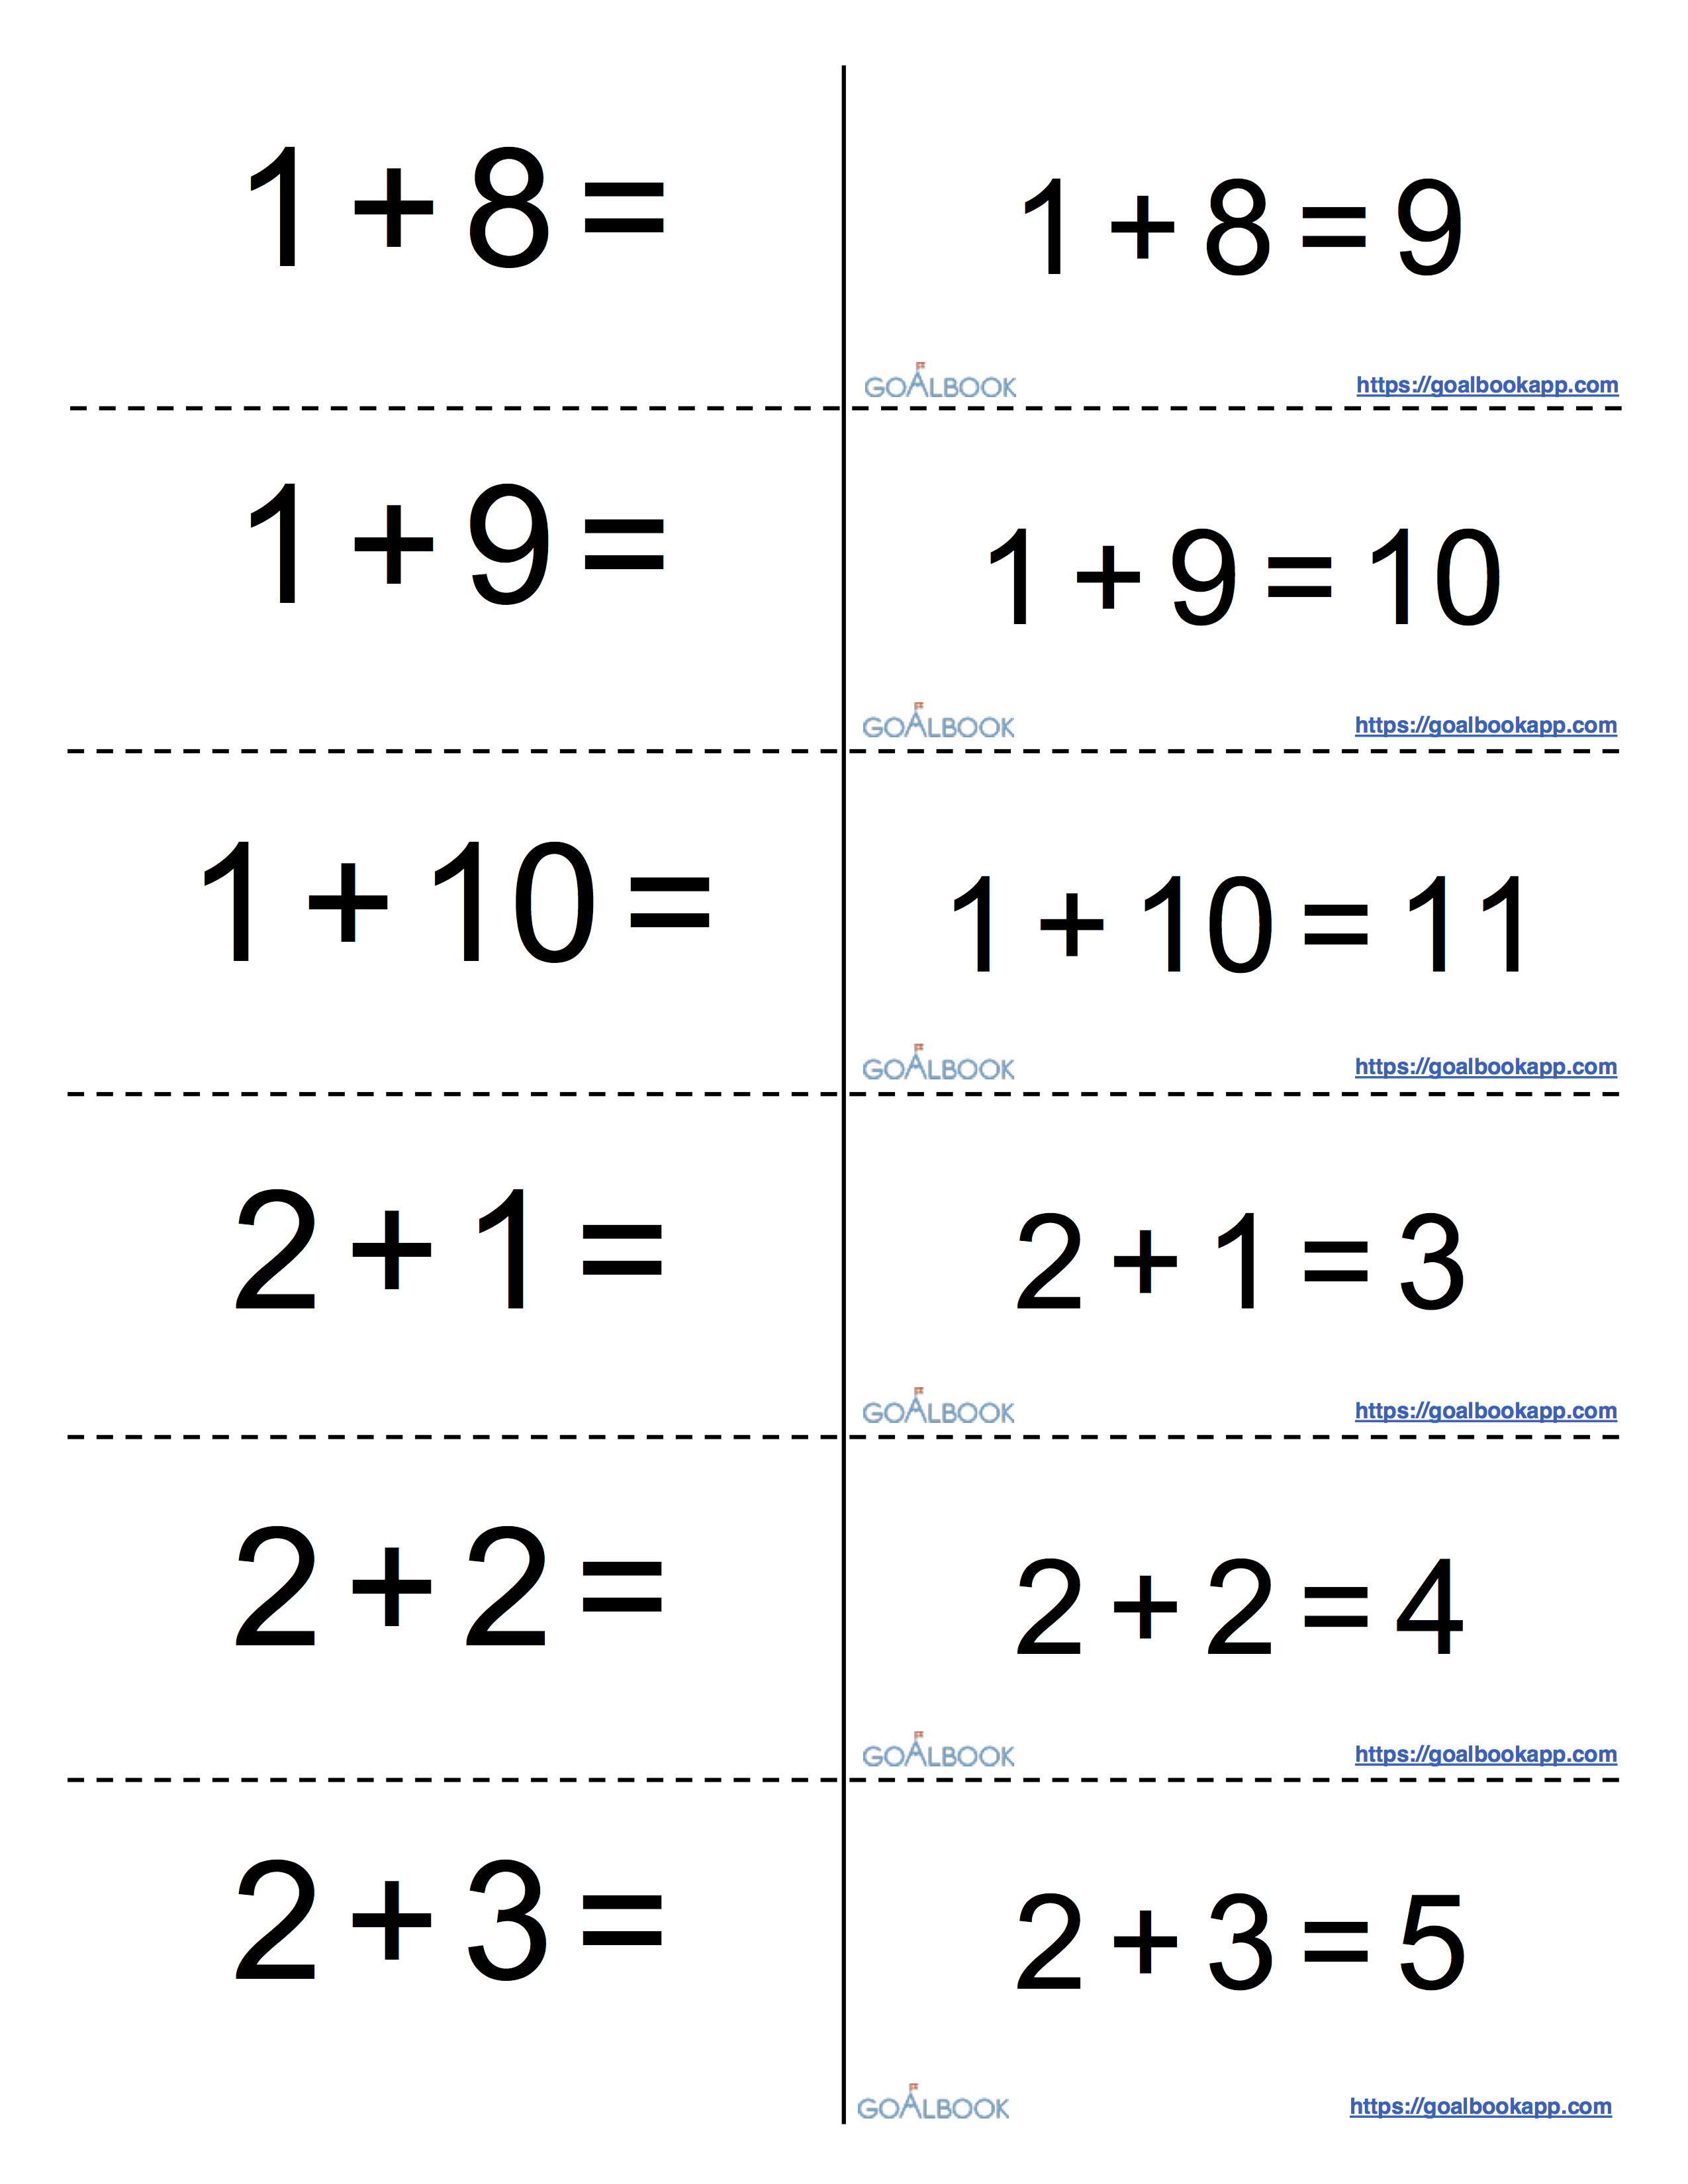 Worksheet Multiplication Flash Cards Printable 1-12 worksheet free printable multiplication flash cards wosenly for kids math activities worksheets older furthermore download